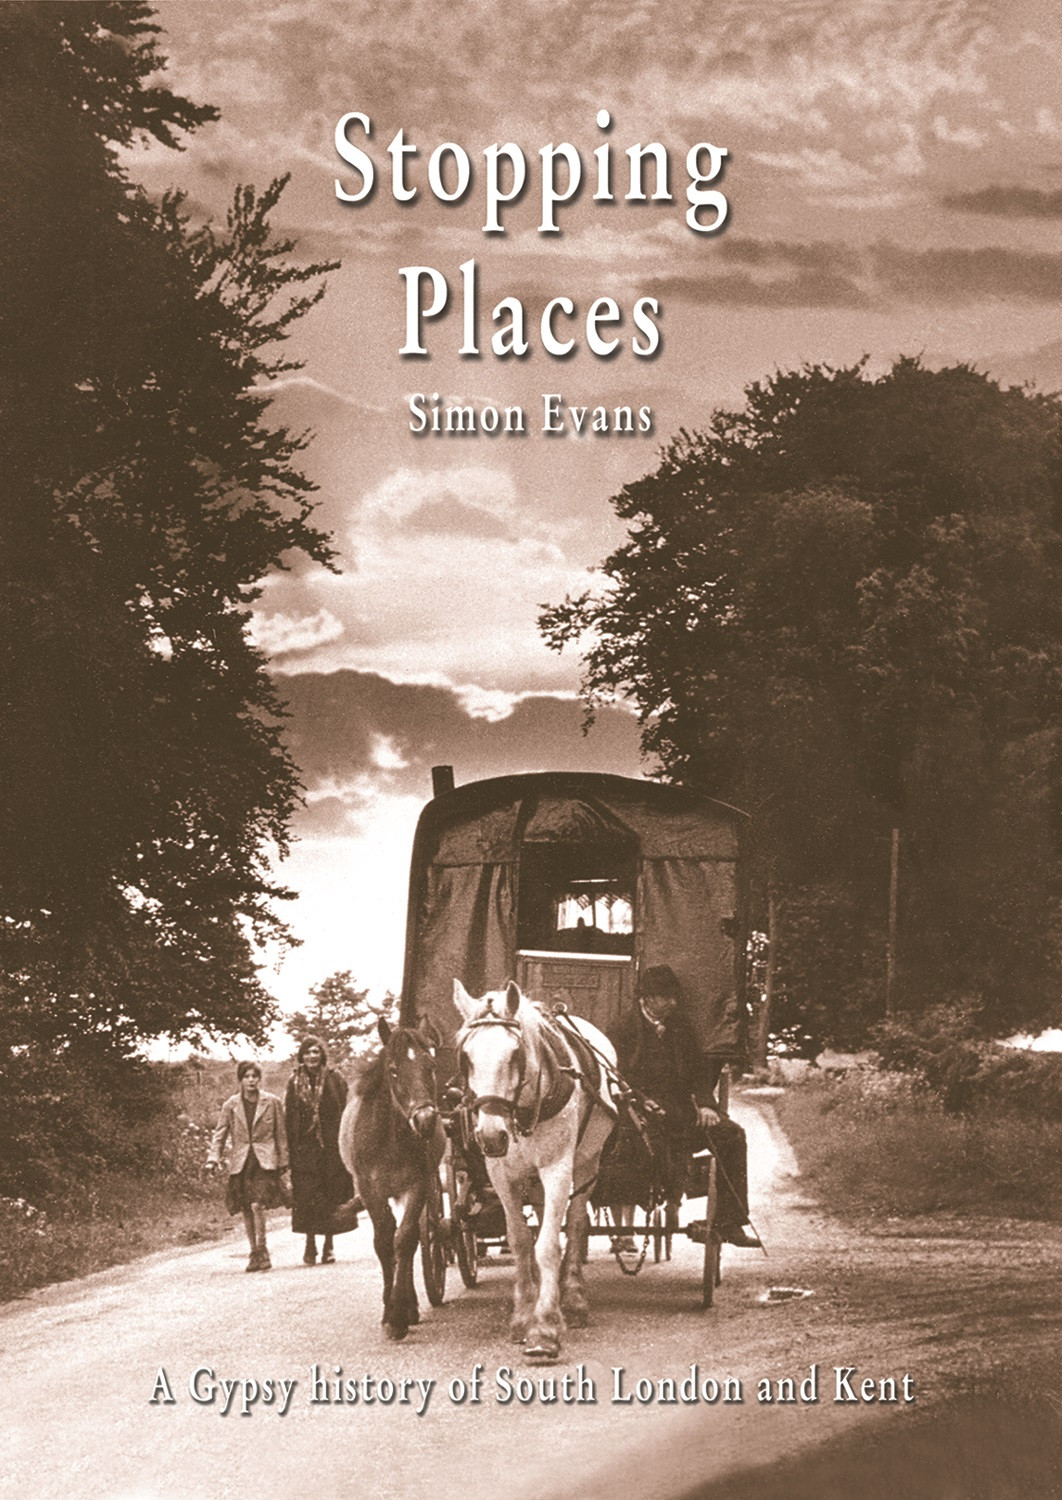 Stopping Places